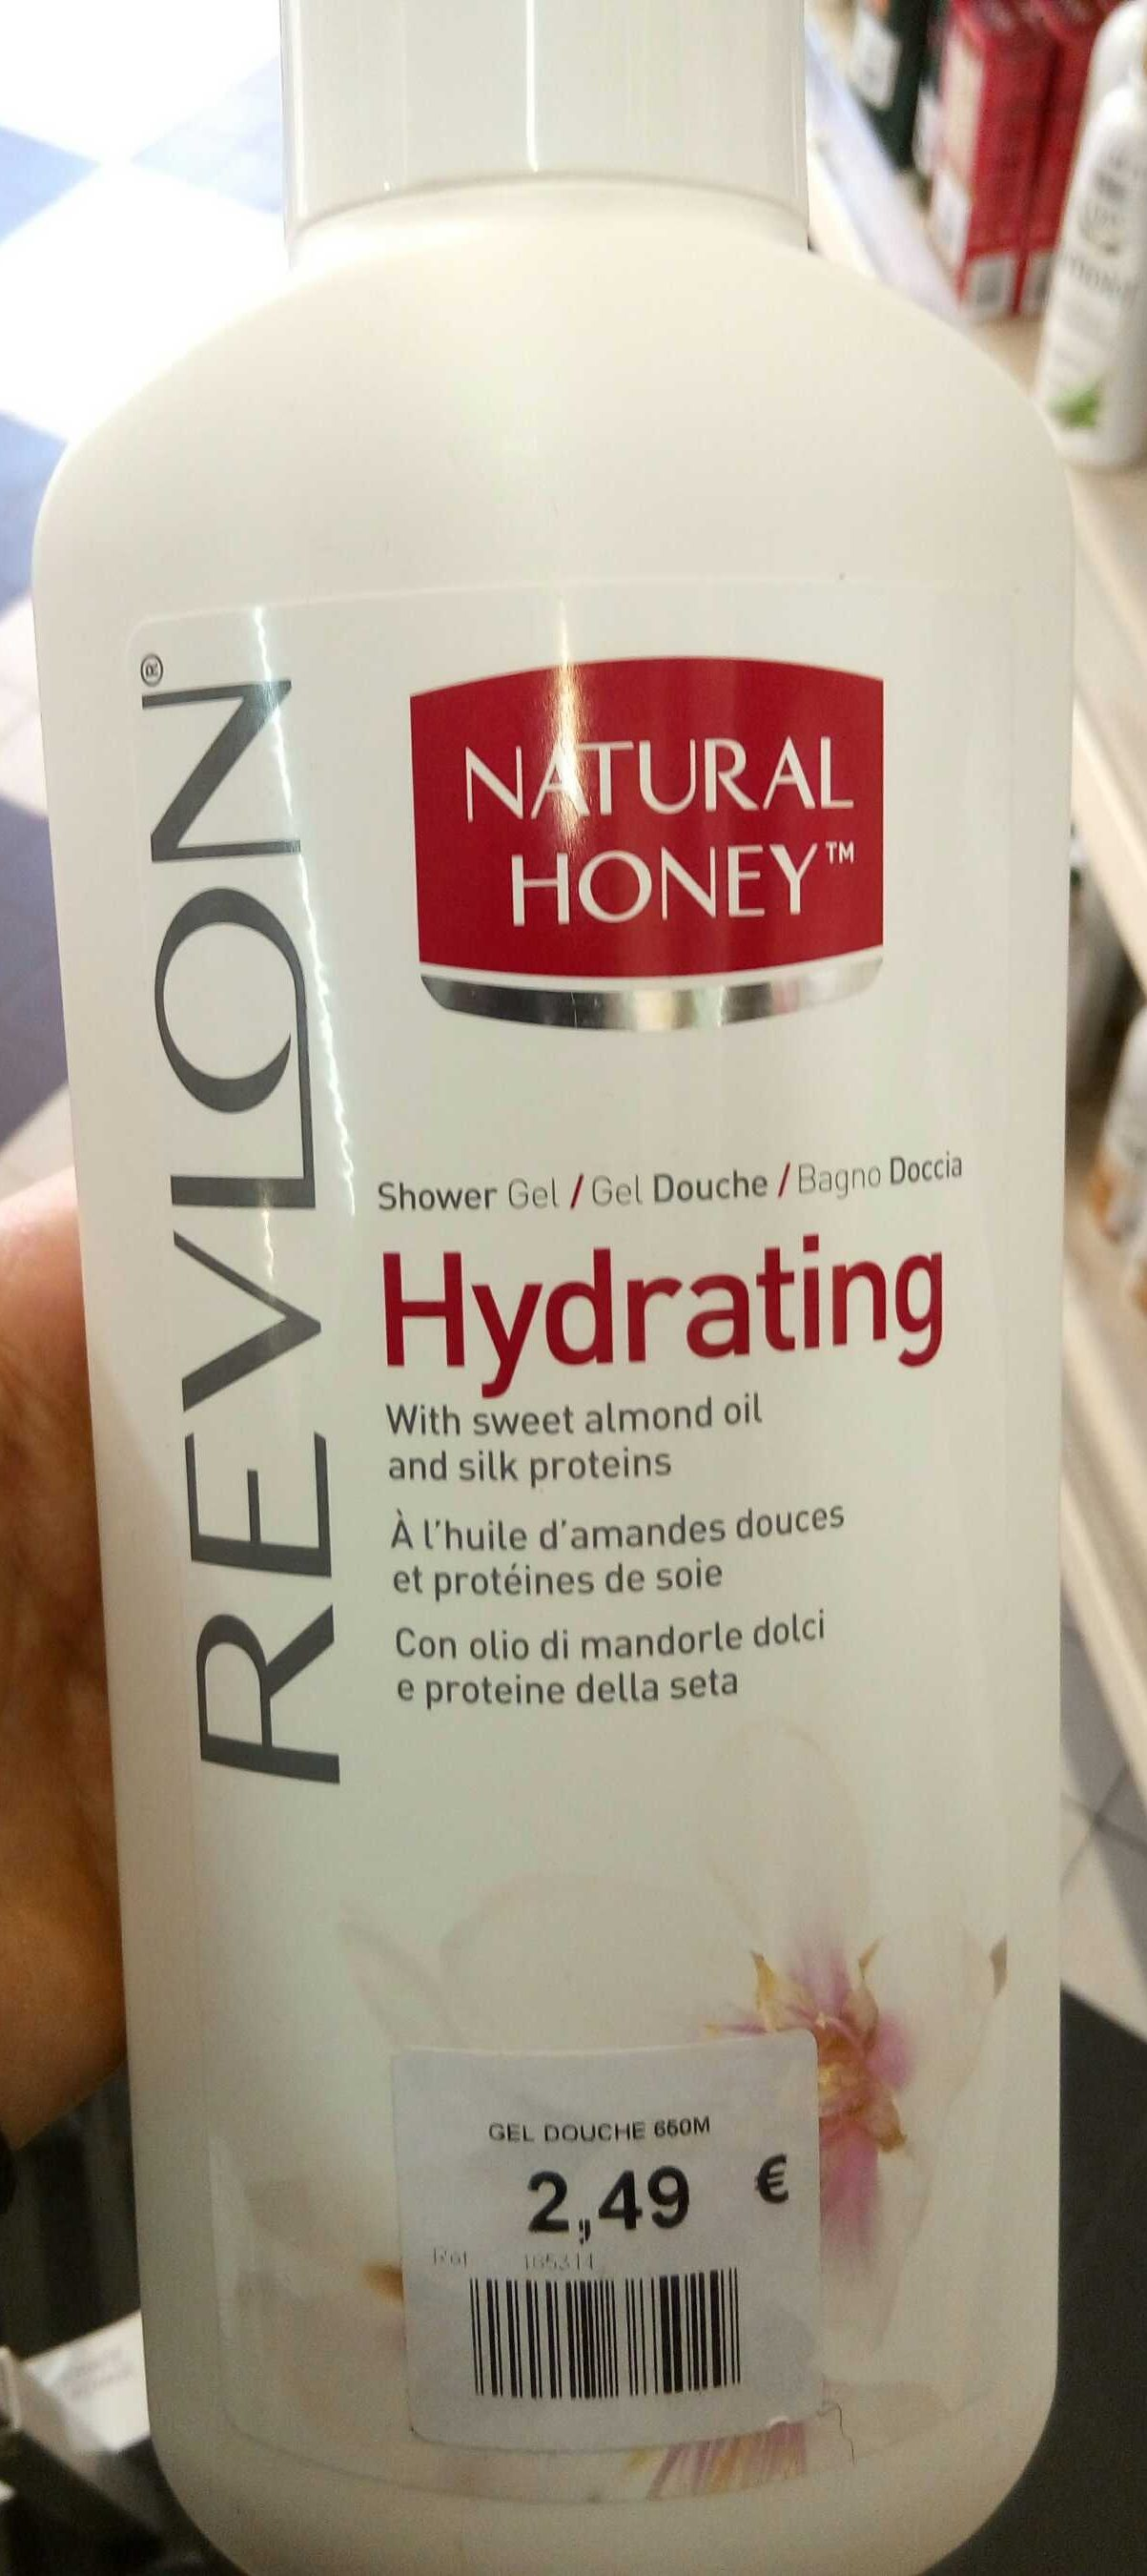 Natural Honey Hydrating - Produit